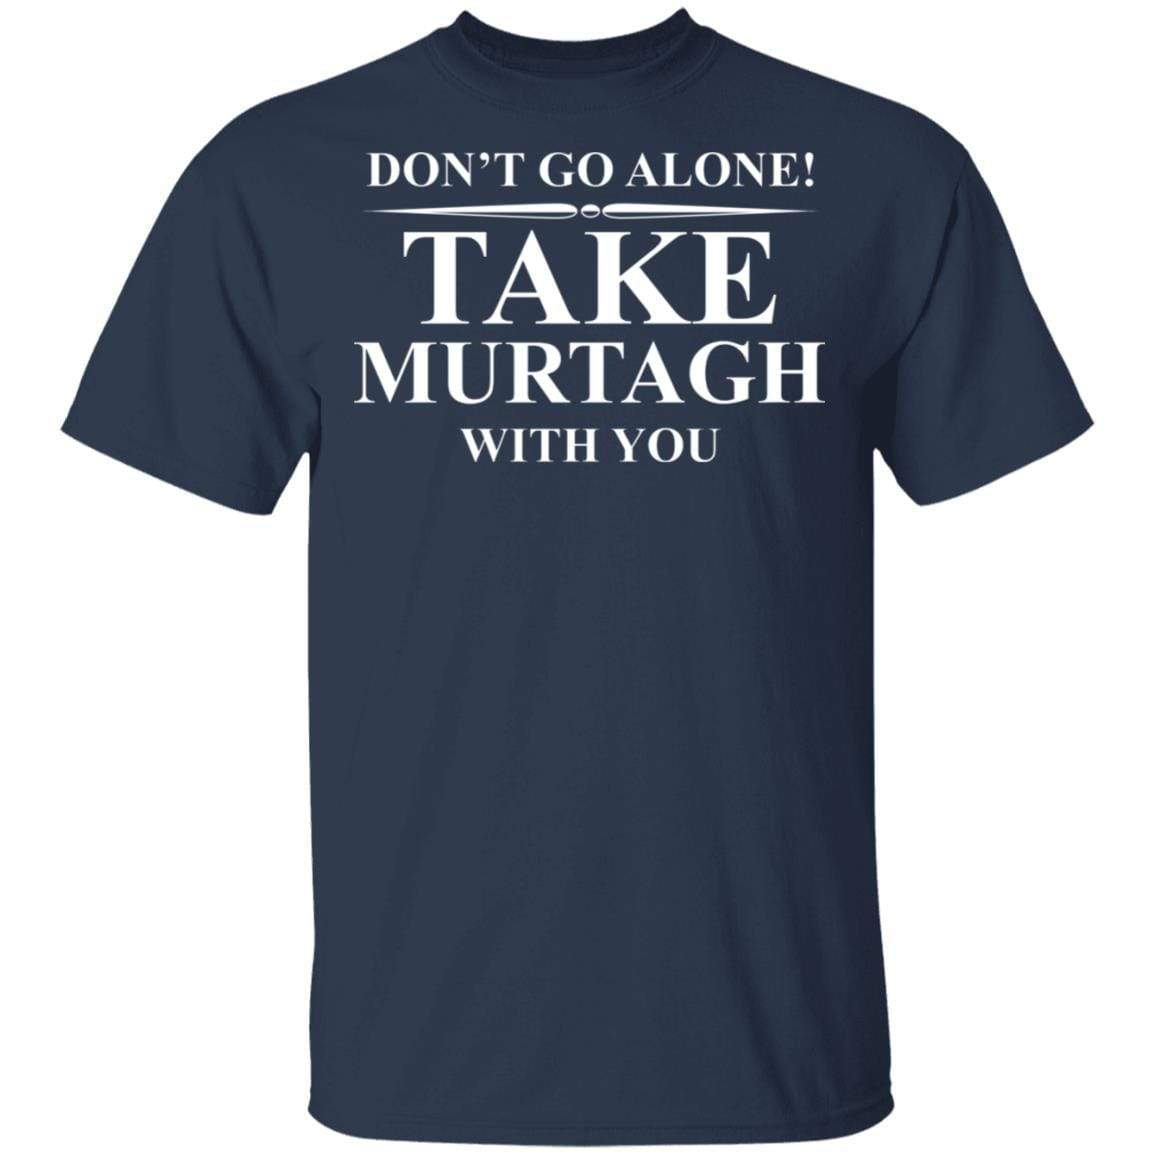 Don't Go Alone Take Murtagh With You T-Shirts, Hoodies 1049-9966-92796760-48248 - Tee Ript